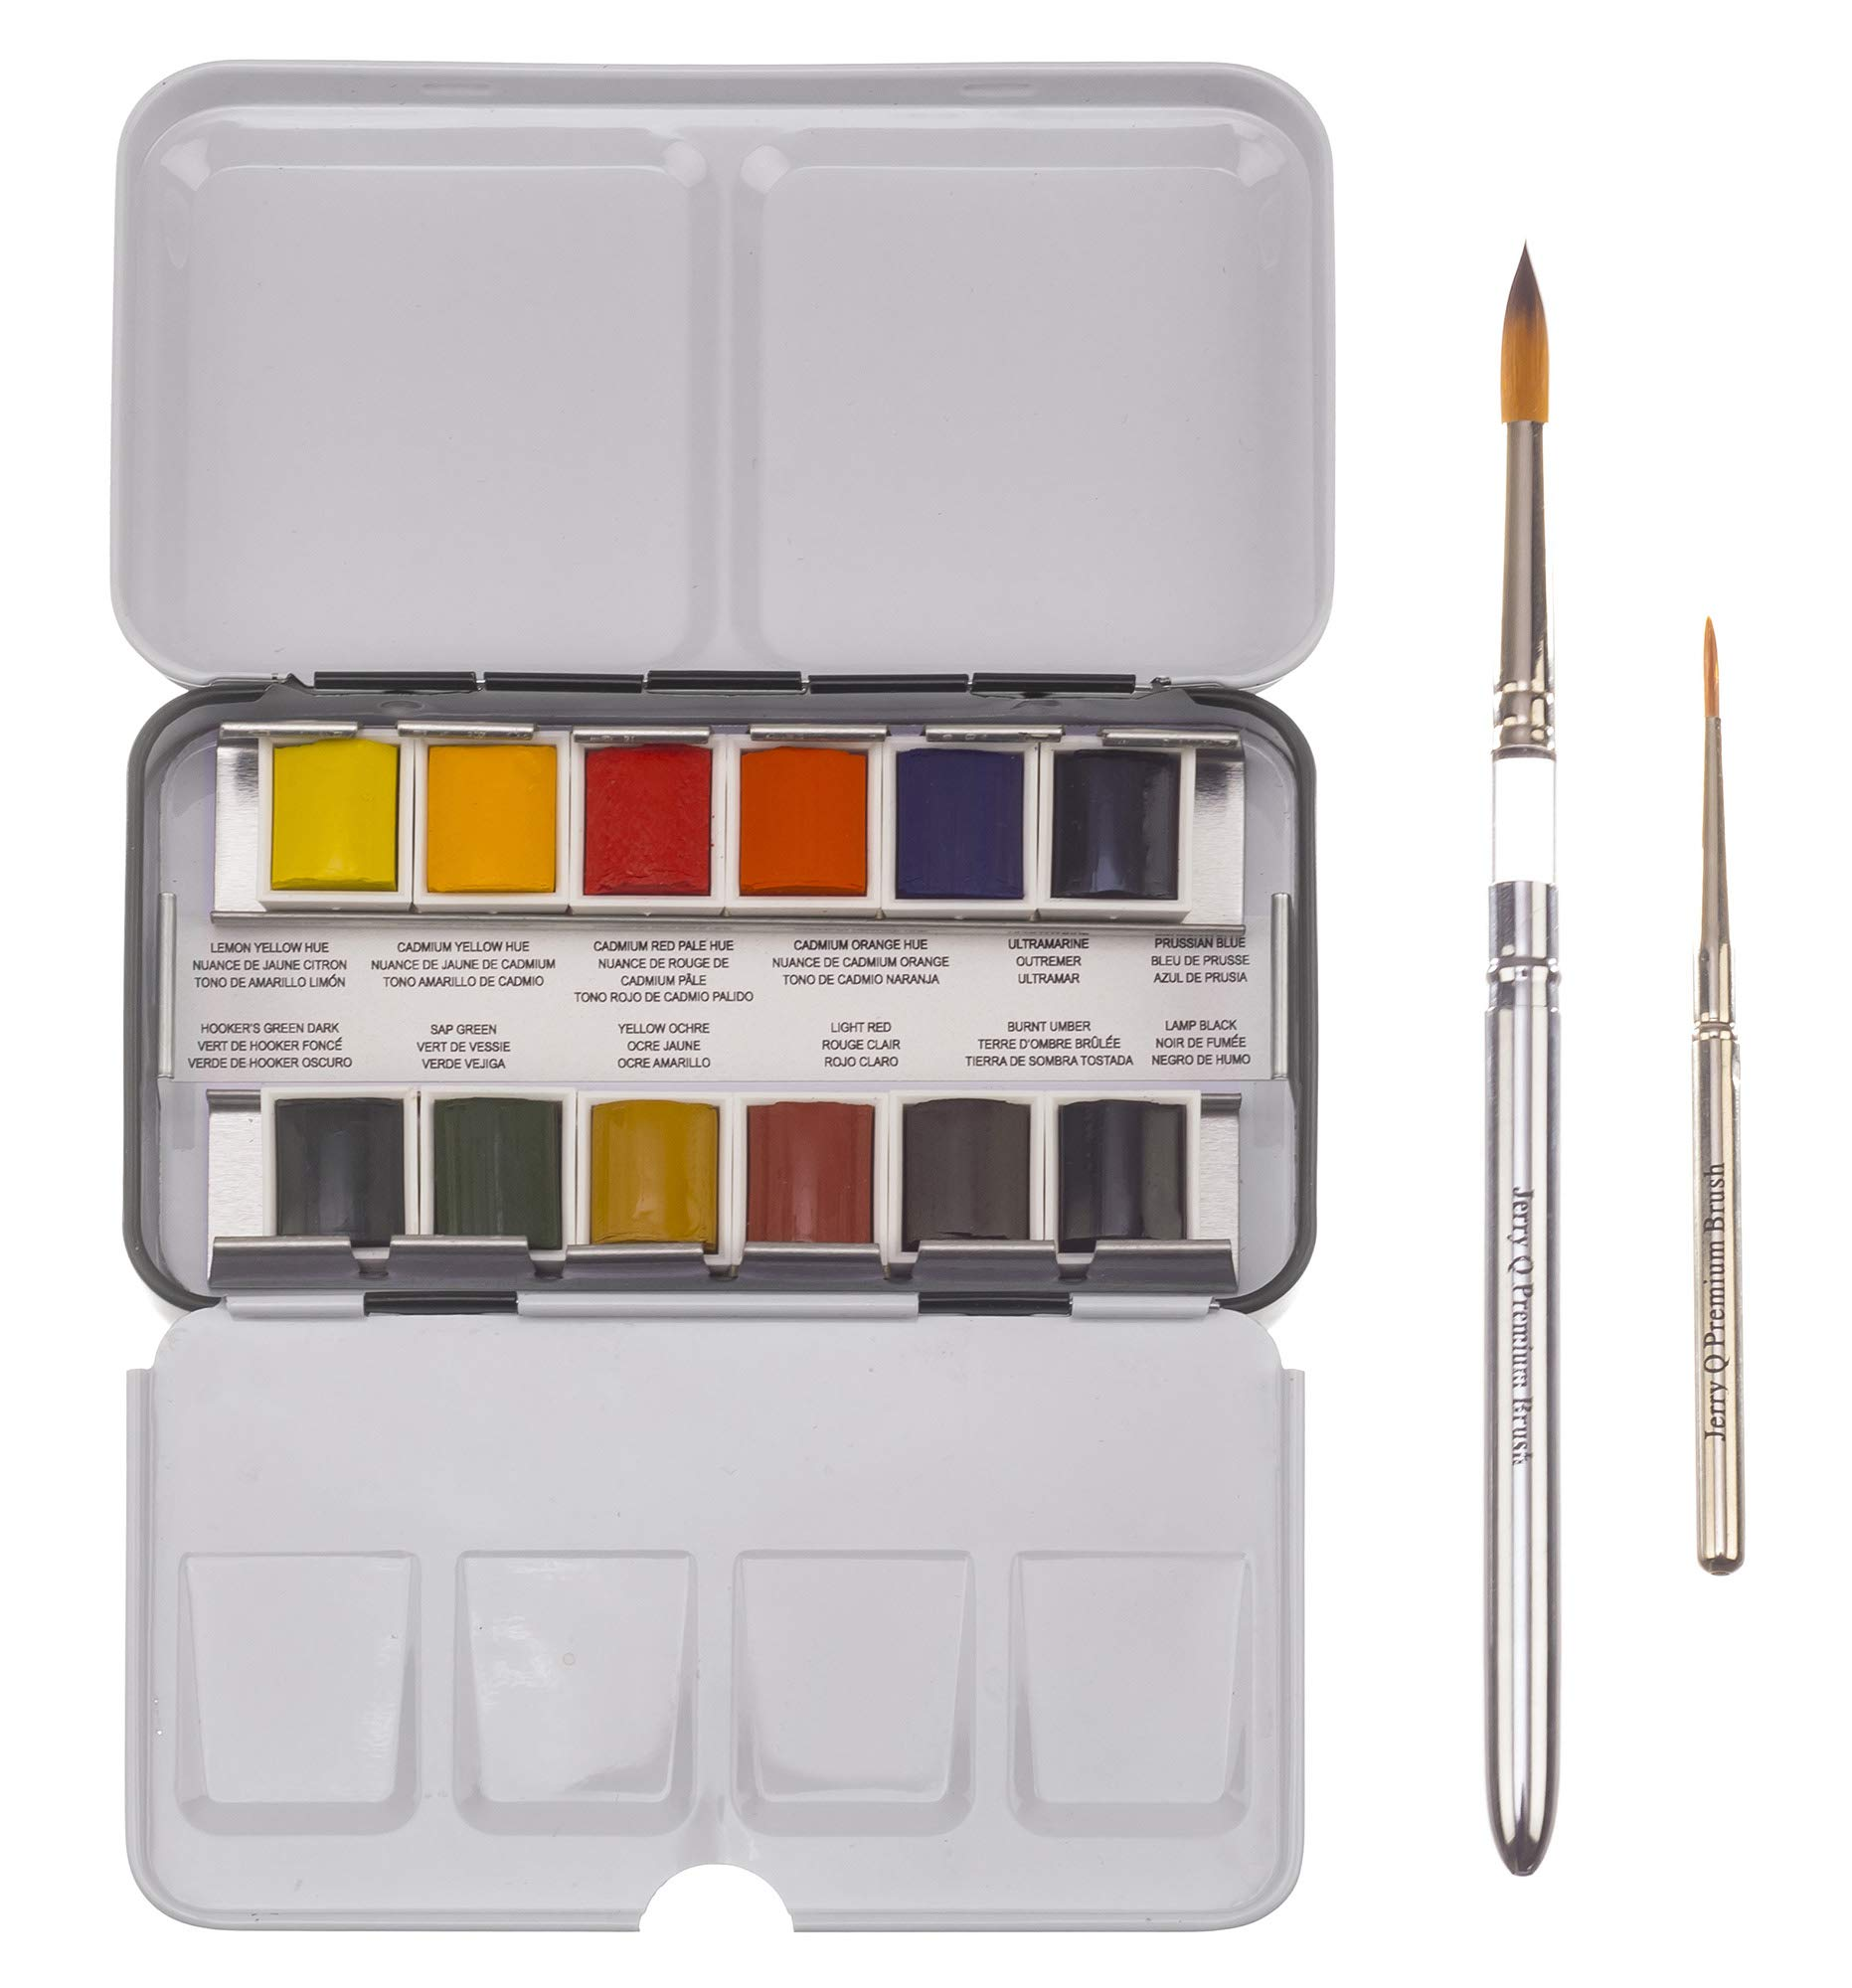 Jerry Q Art 12 Assorted Artist Grade Premium Water Colour Travel Pocket Set with 2 Brushes, Half Pans-JQ 12 Professional by Jerry Q Art